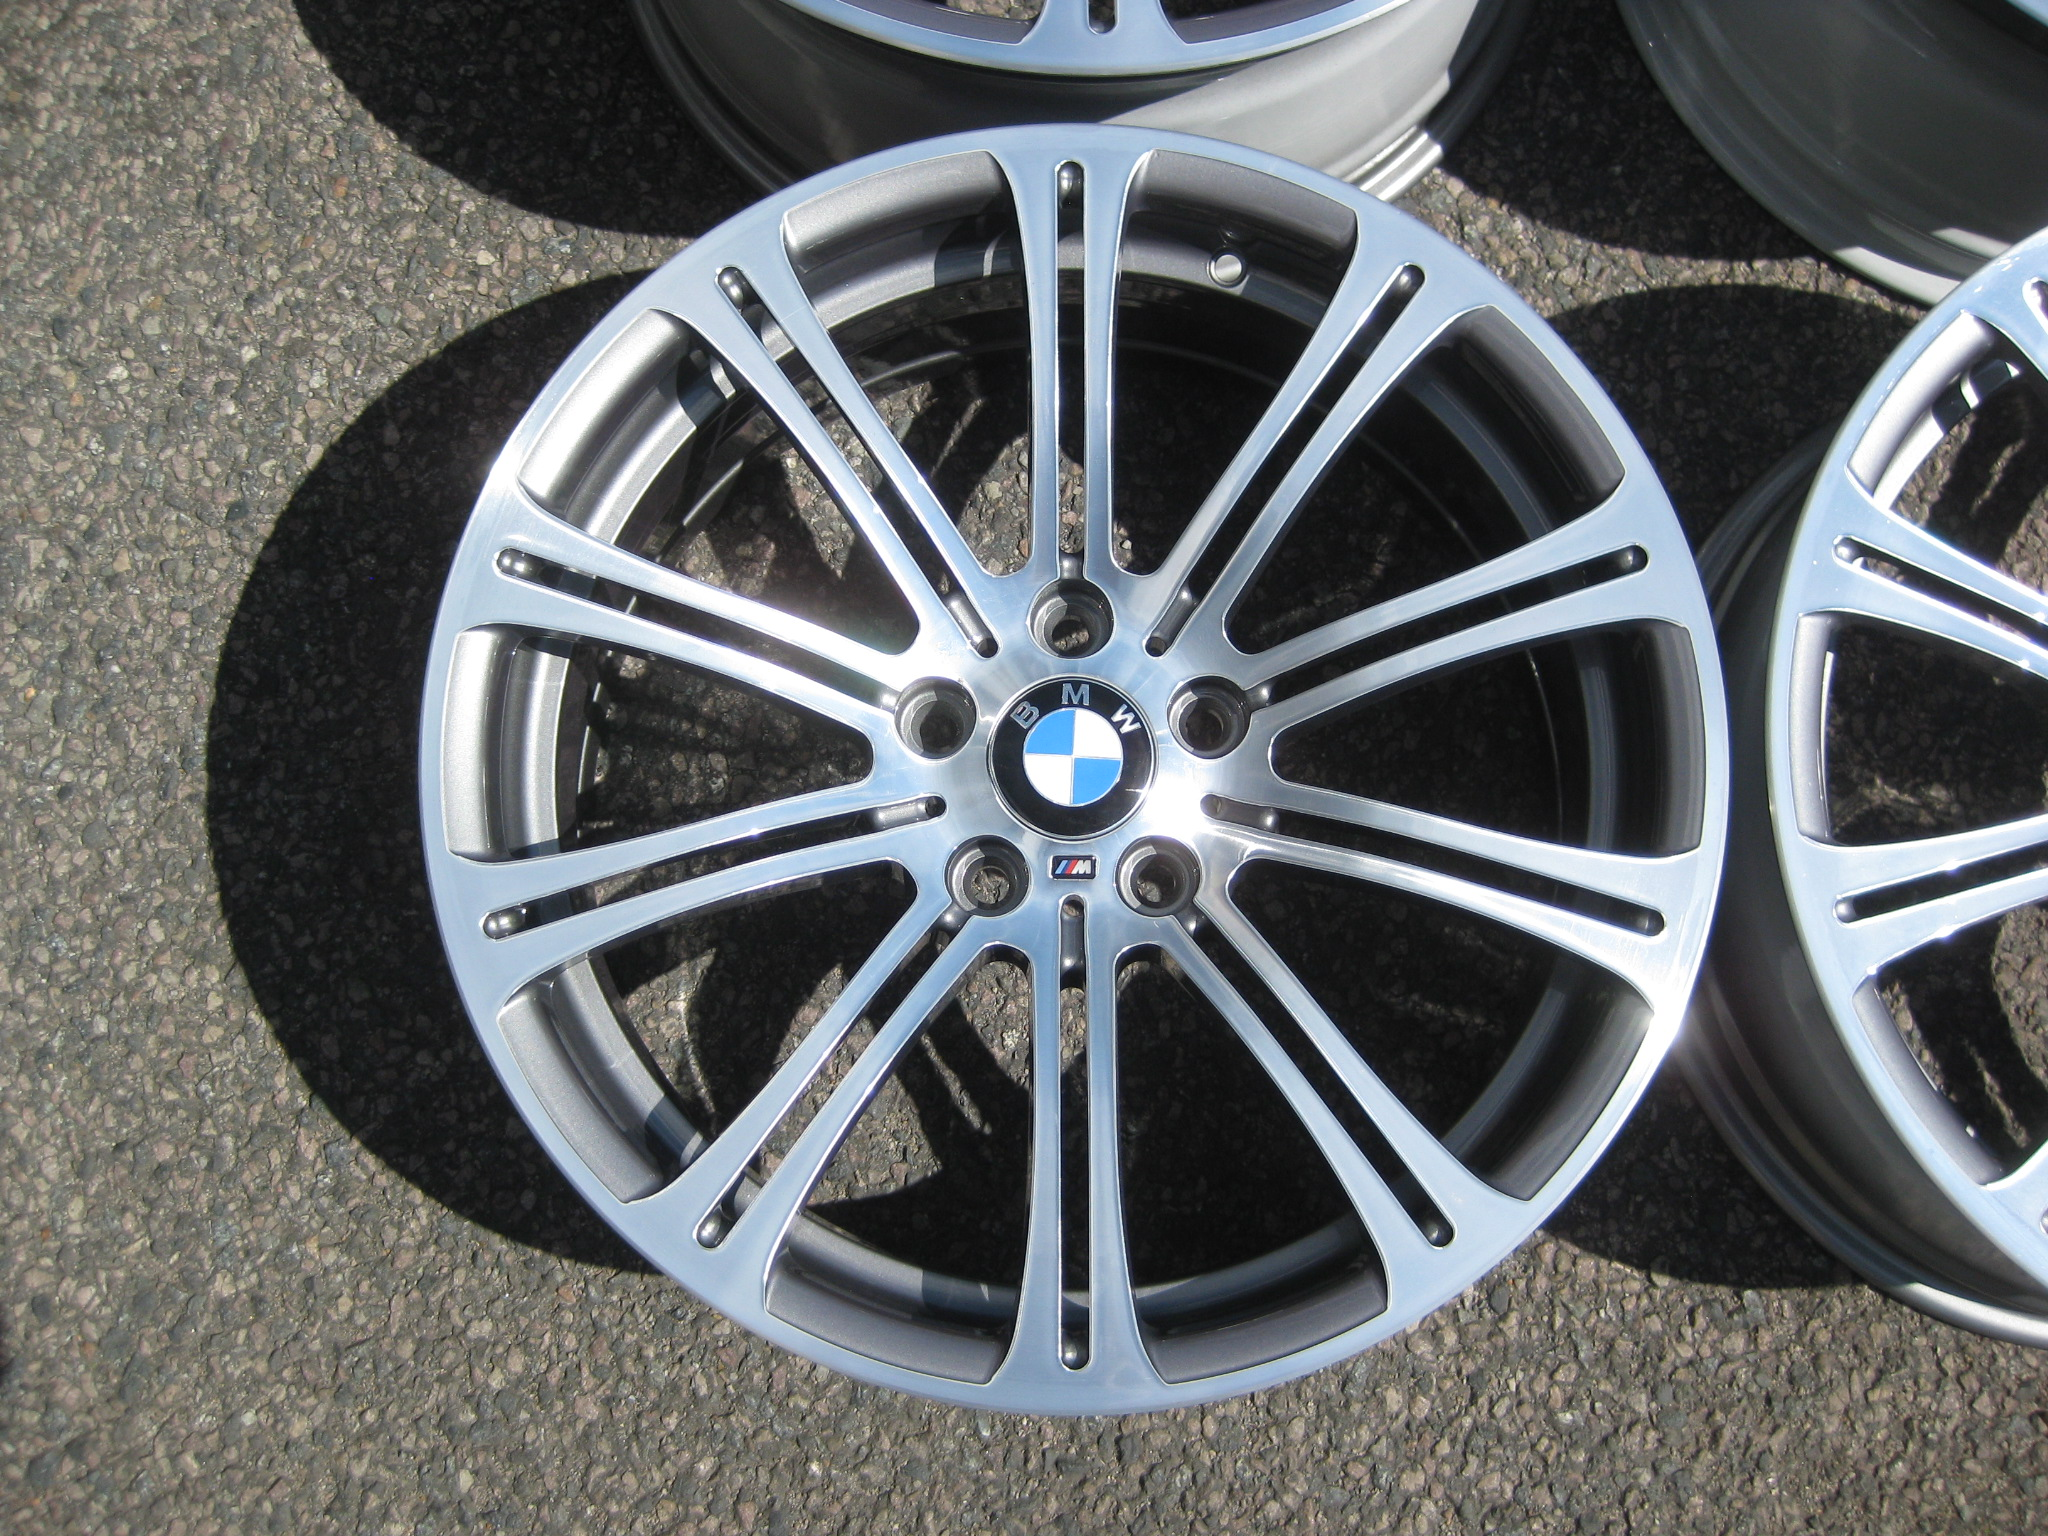 "USED 19"" GENUINE BMW STYLE 220M E92 M3 POLISHED FORGED ALLOY WHEELS, WIDE REAR, FULLY REFURBED"